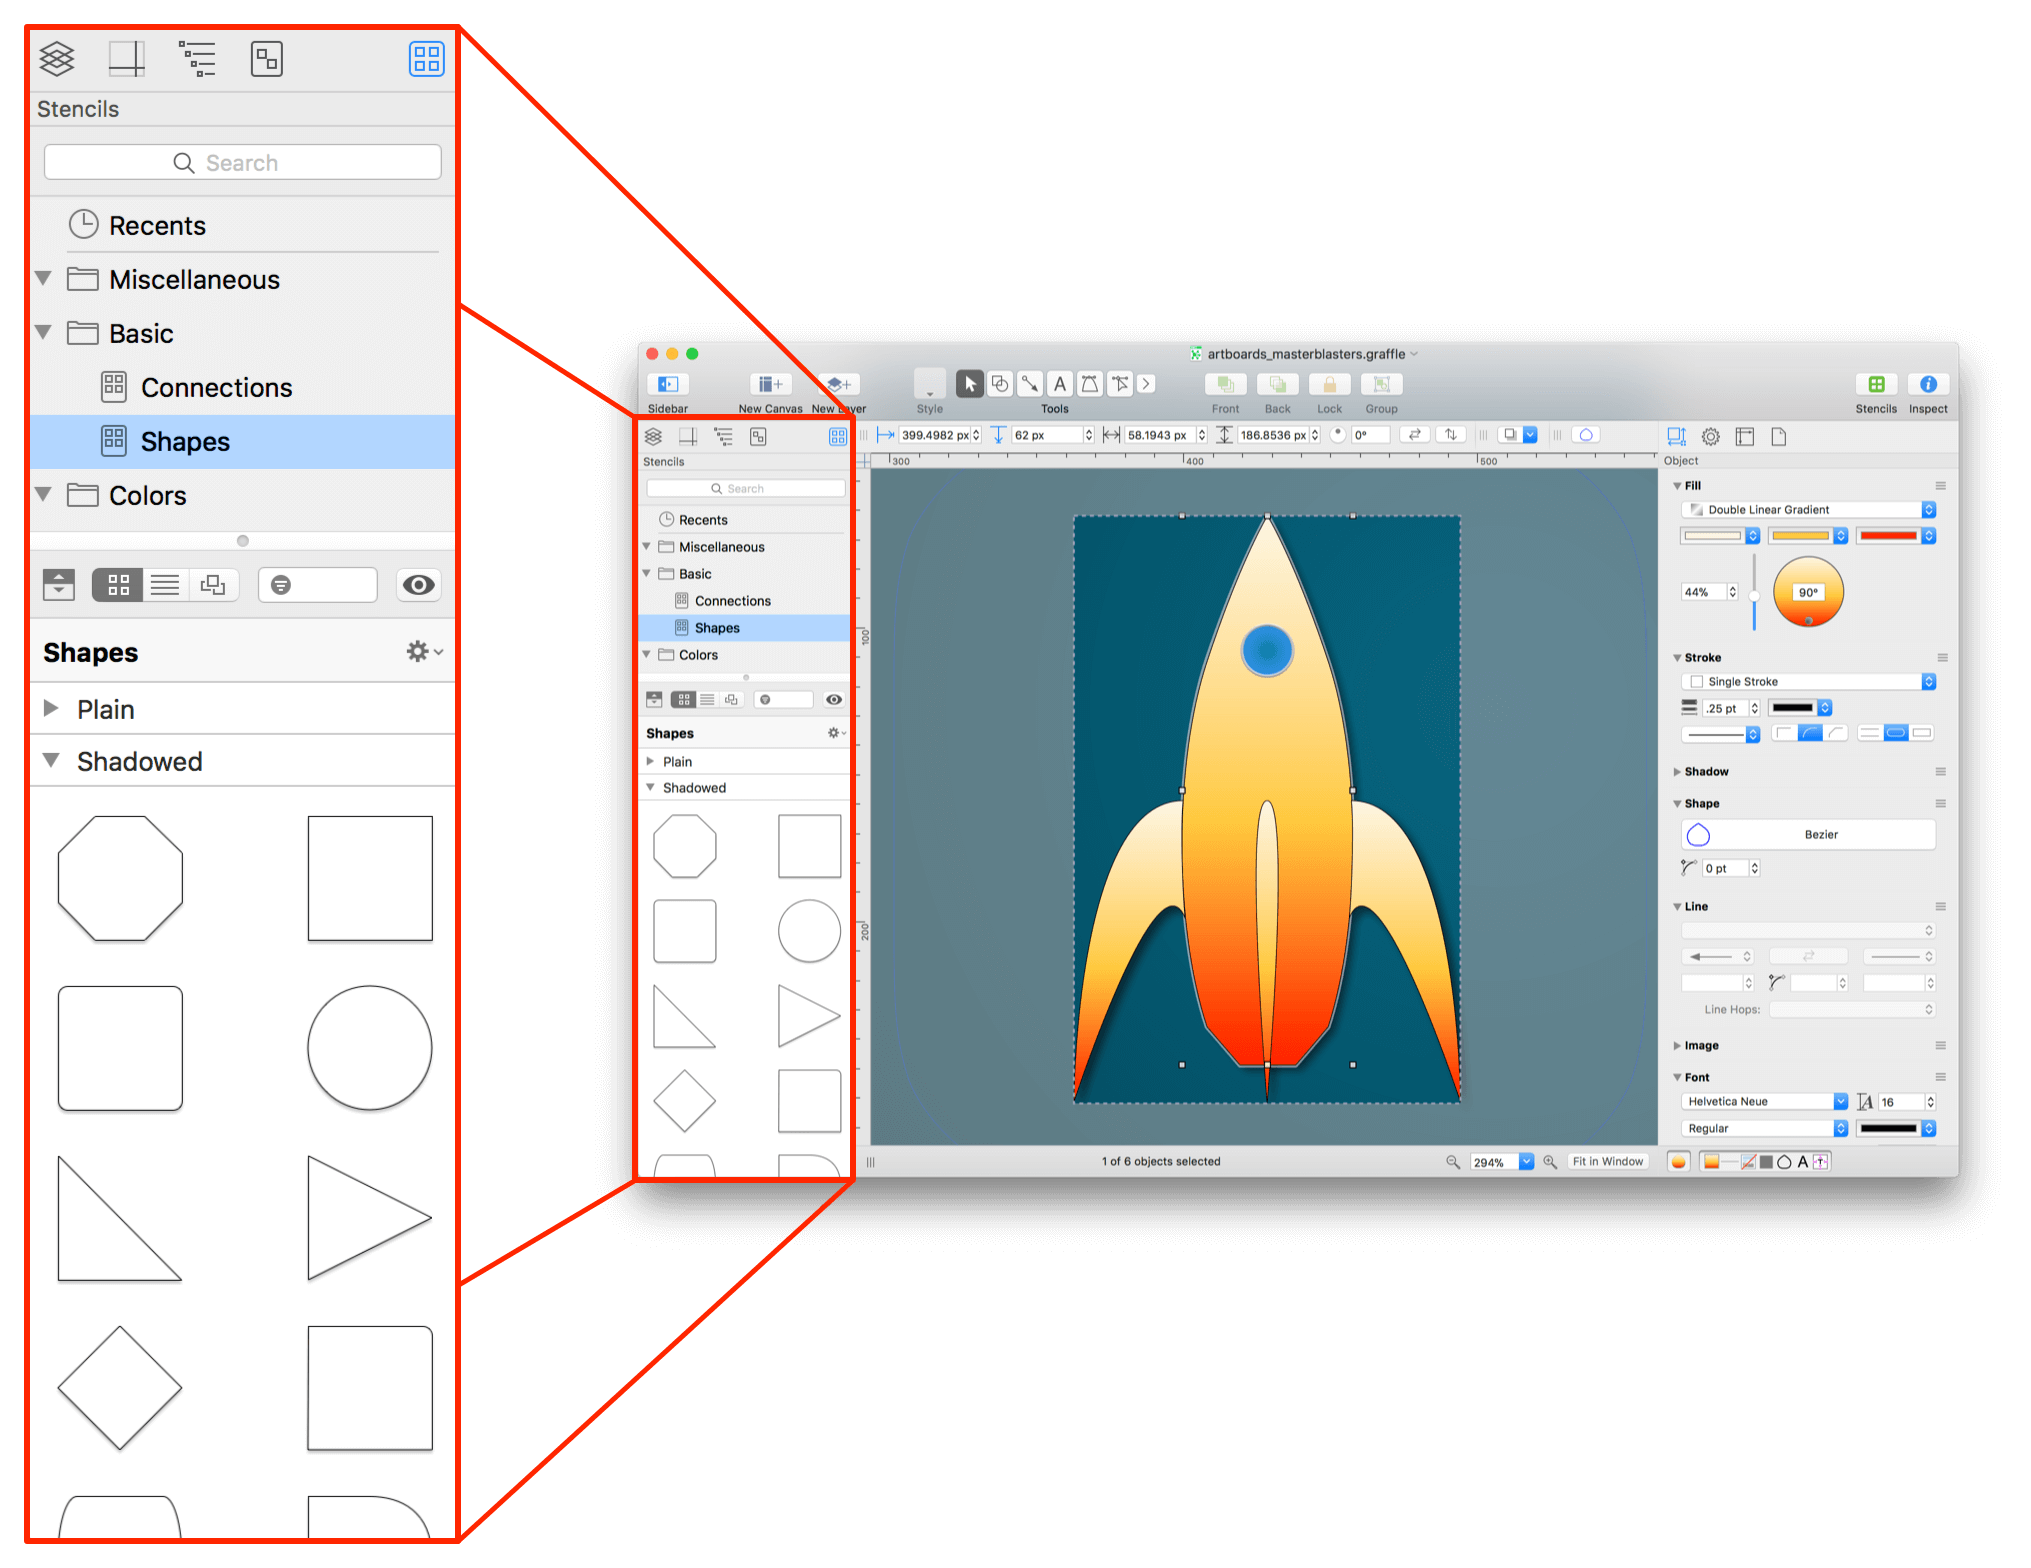 An exploding view of OmniGraffle, showing the Stencil Browser in the left sidebar, shown in a much larger scale than in the full window in the background.